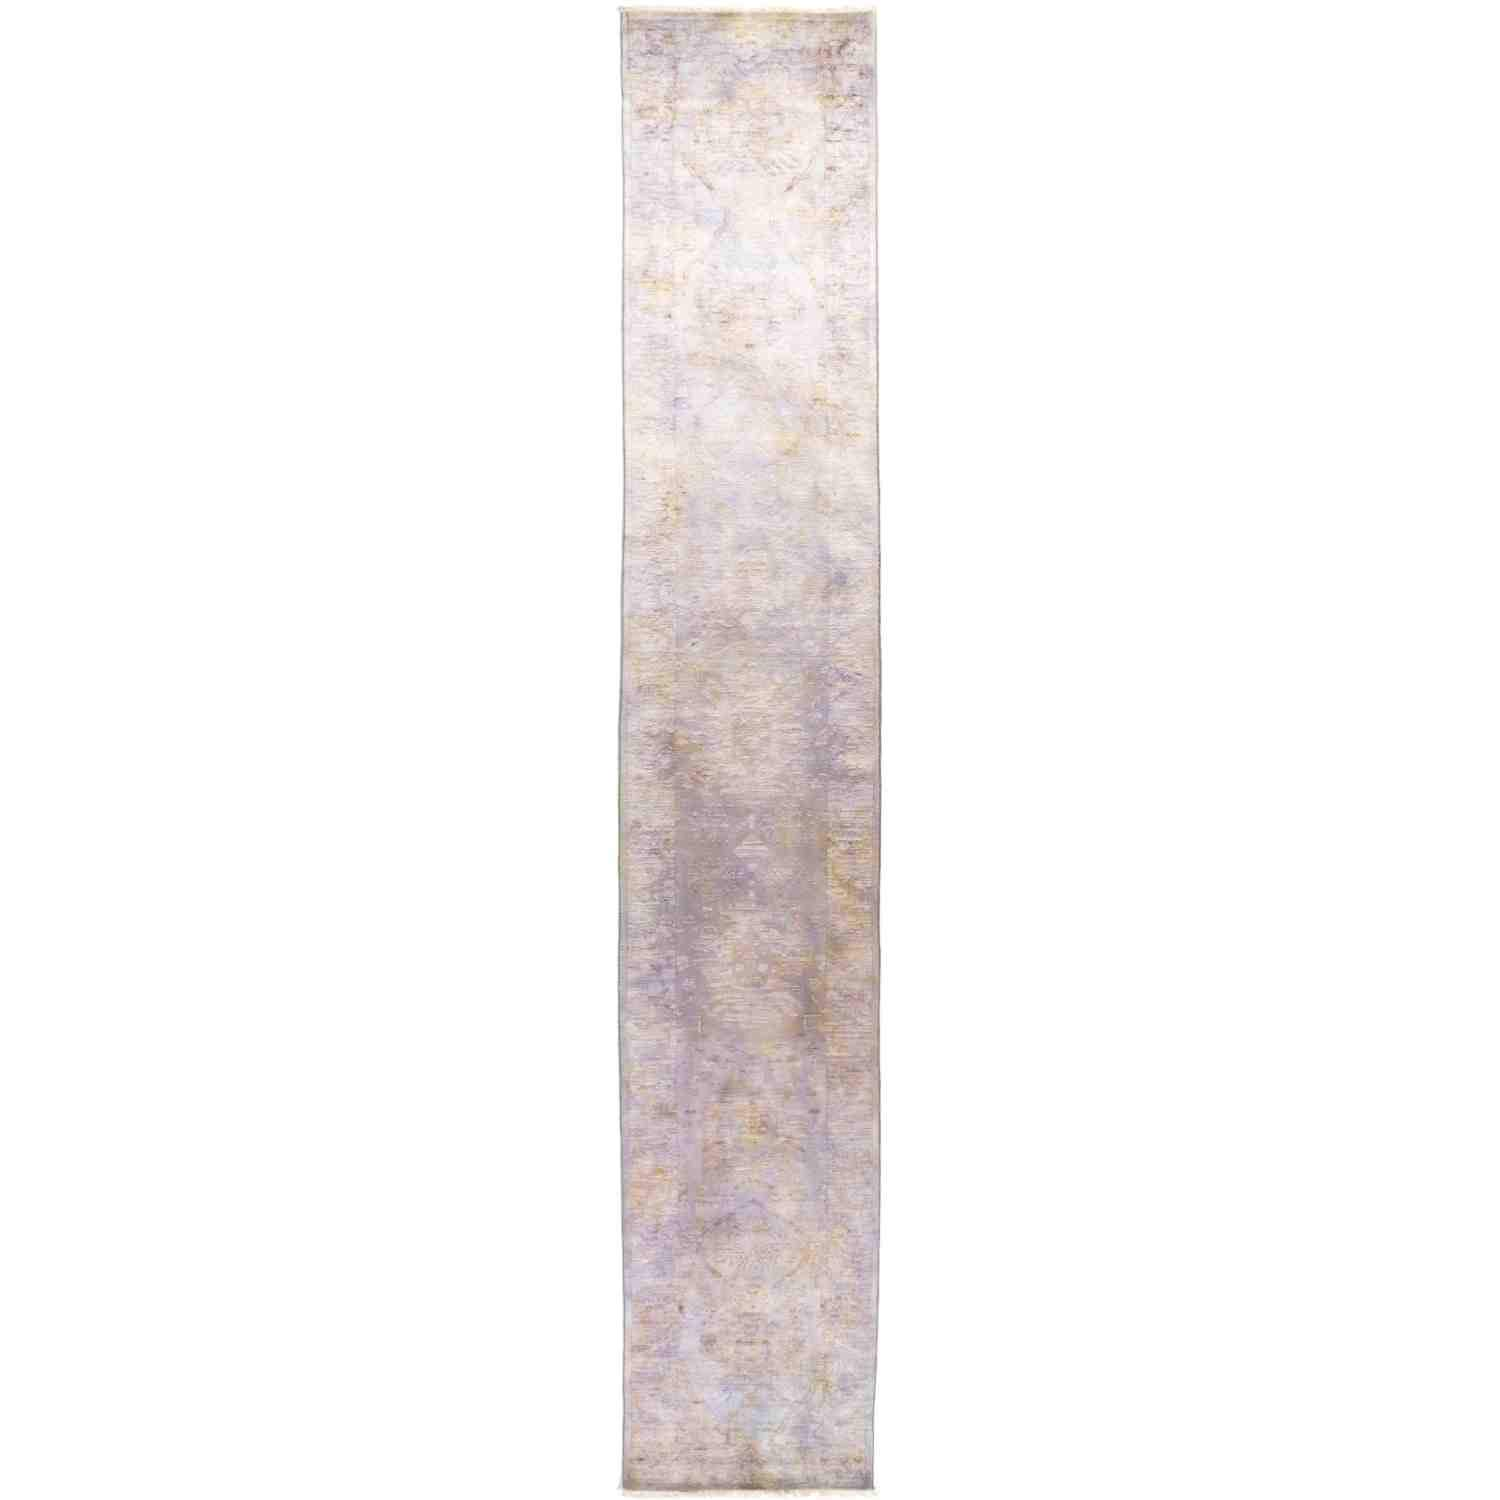 """Solo Rugs Vibrance Orlando One of a Kind Hand Knotted Area Rug, Powder Lavender, 2' 7"""" x 15' 10"""""""